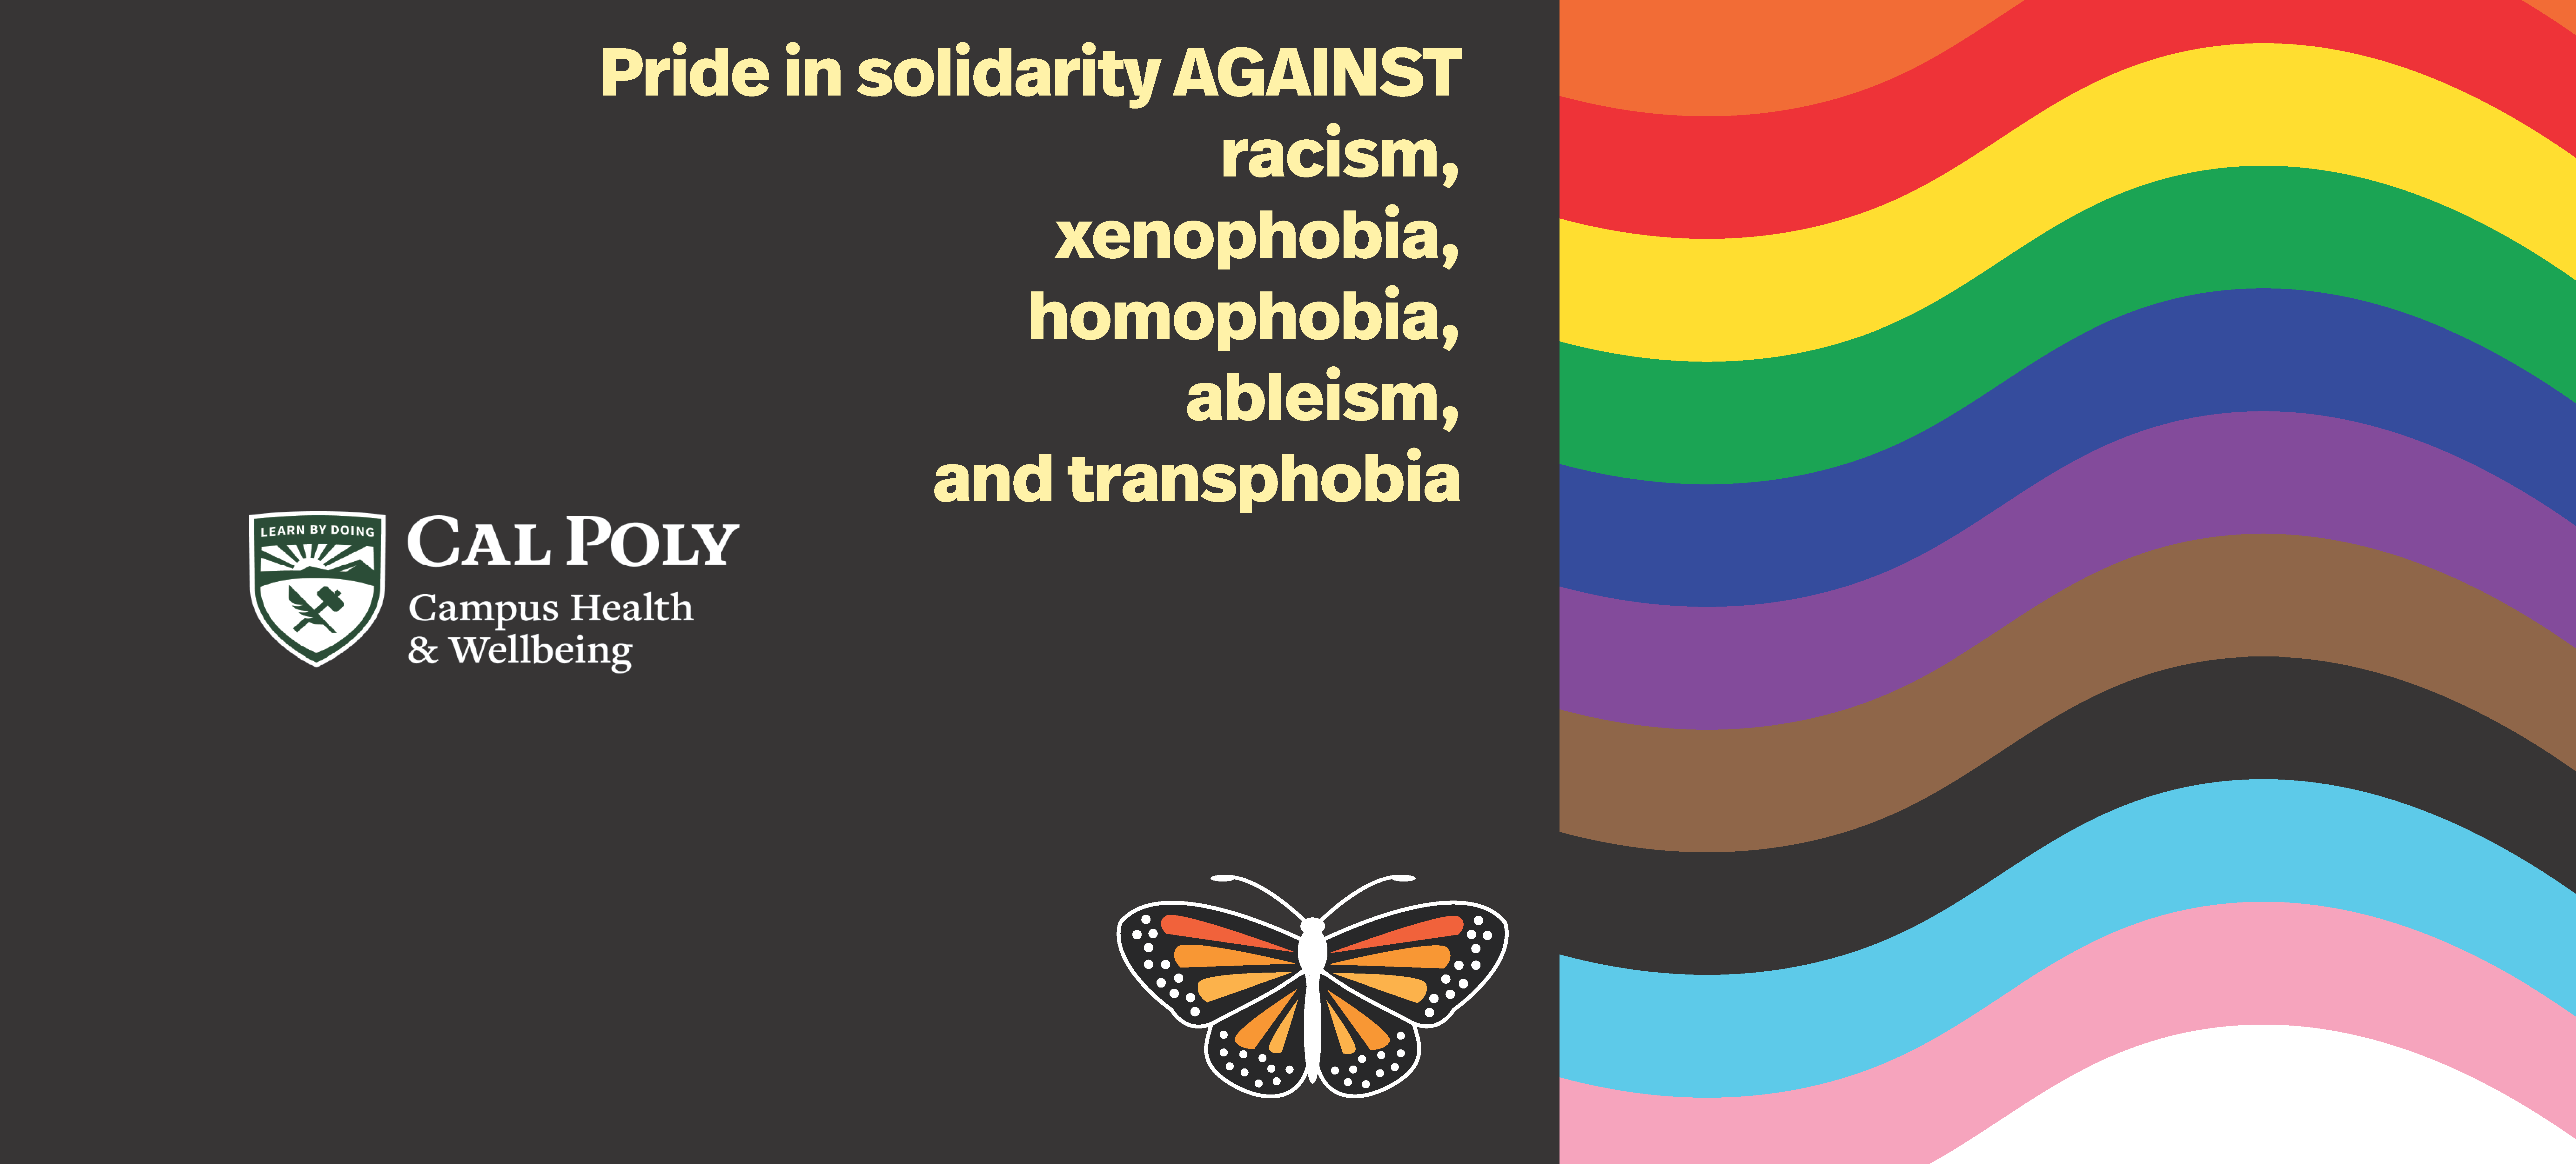 """Cal Poly banner with pride and solidarity flag and statement, """"Pride in solidarity against racism, xenophobia, homophobia, ableism, and transphobia"""""""